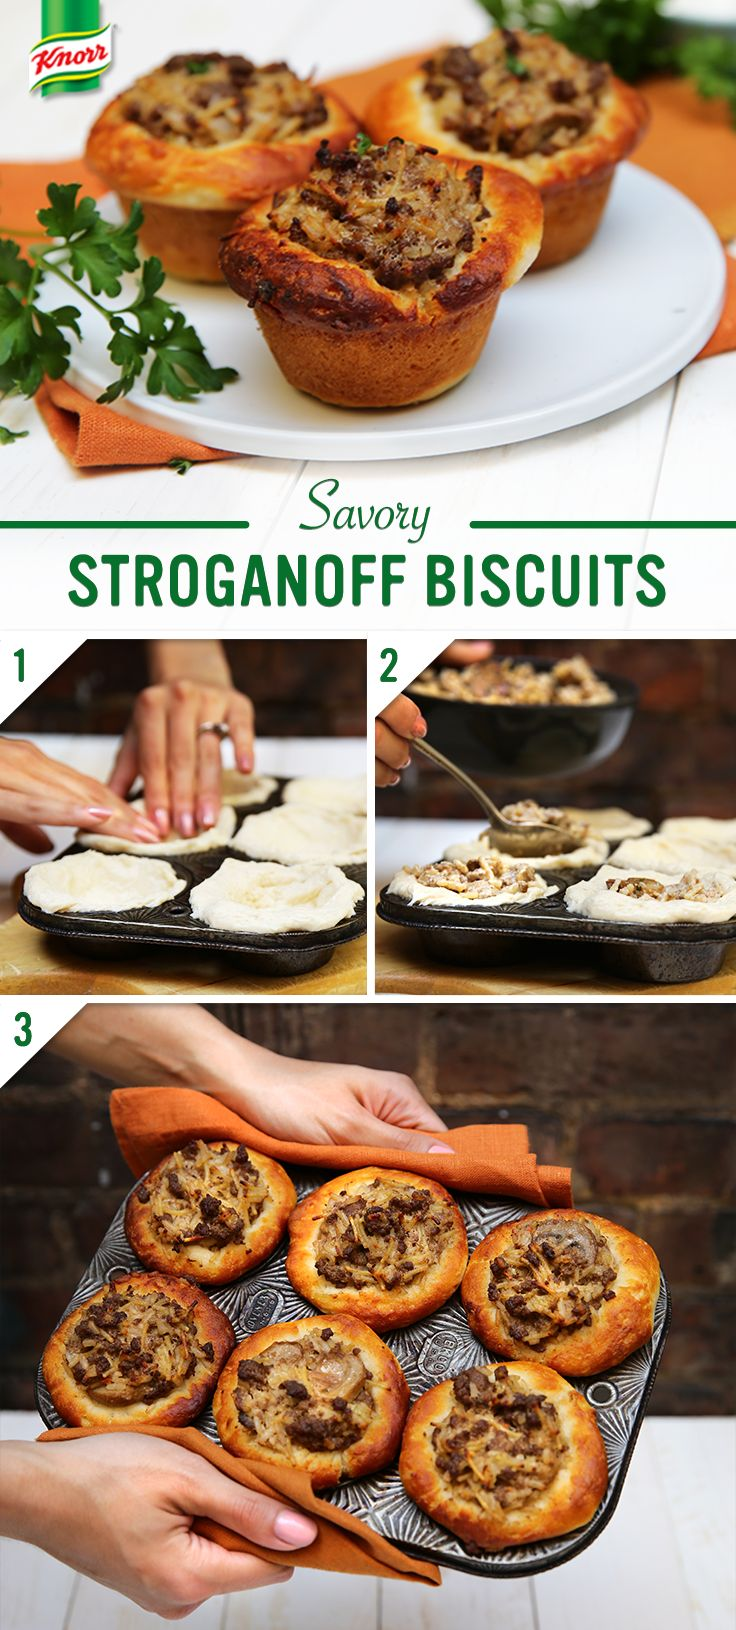 Need a simple, family (and budget) friendly dinner tonight? Follow this easy recipe for 20-Minute Stroganoff Muffin Bites! Enjoy as an appetizer, twist on dinner, party food, or anytime flavorful treat. 1. Preheat oven to 350°. Line muffin pans with buttermilk biscuits by pressing bread on bottom & up sides of pan. 2. Fill each muffin w/ 1/4 cup of Knorr's 20-Minute Stroganoff and bake until golden. 3. Garnish with sour cream, chopped parsley, and favorite vegetables.